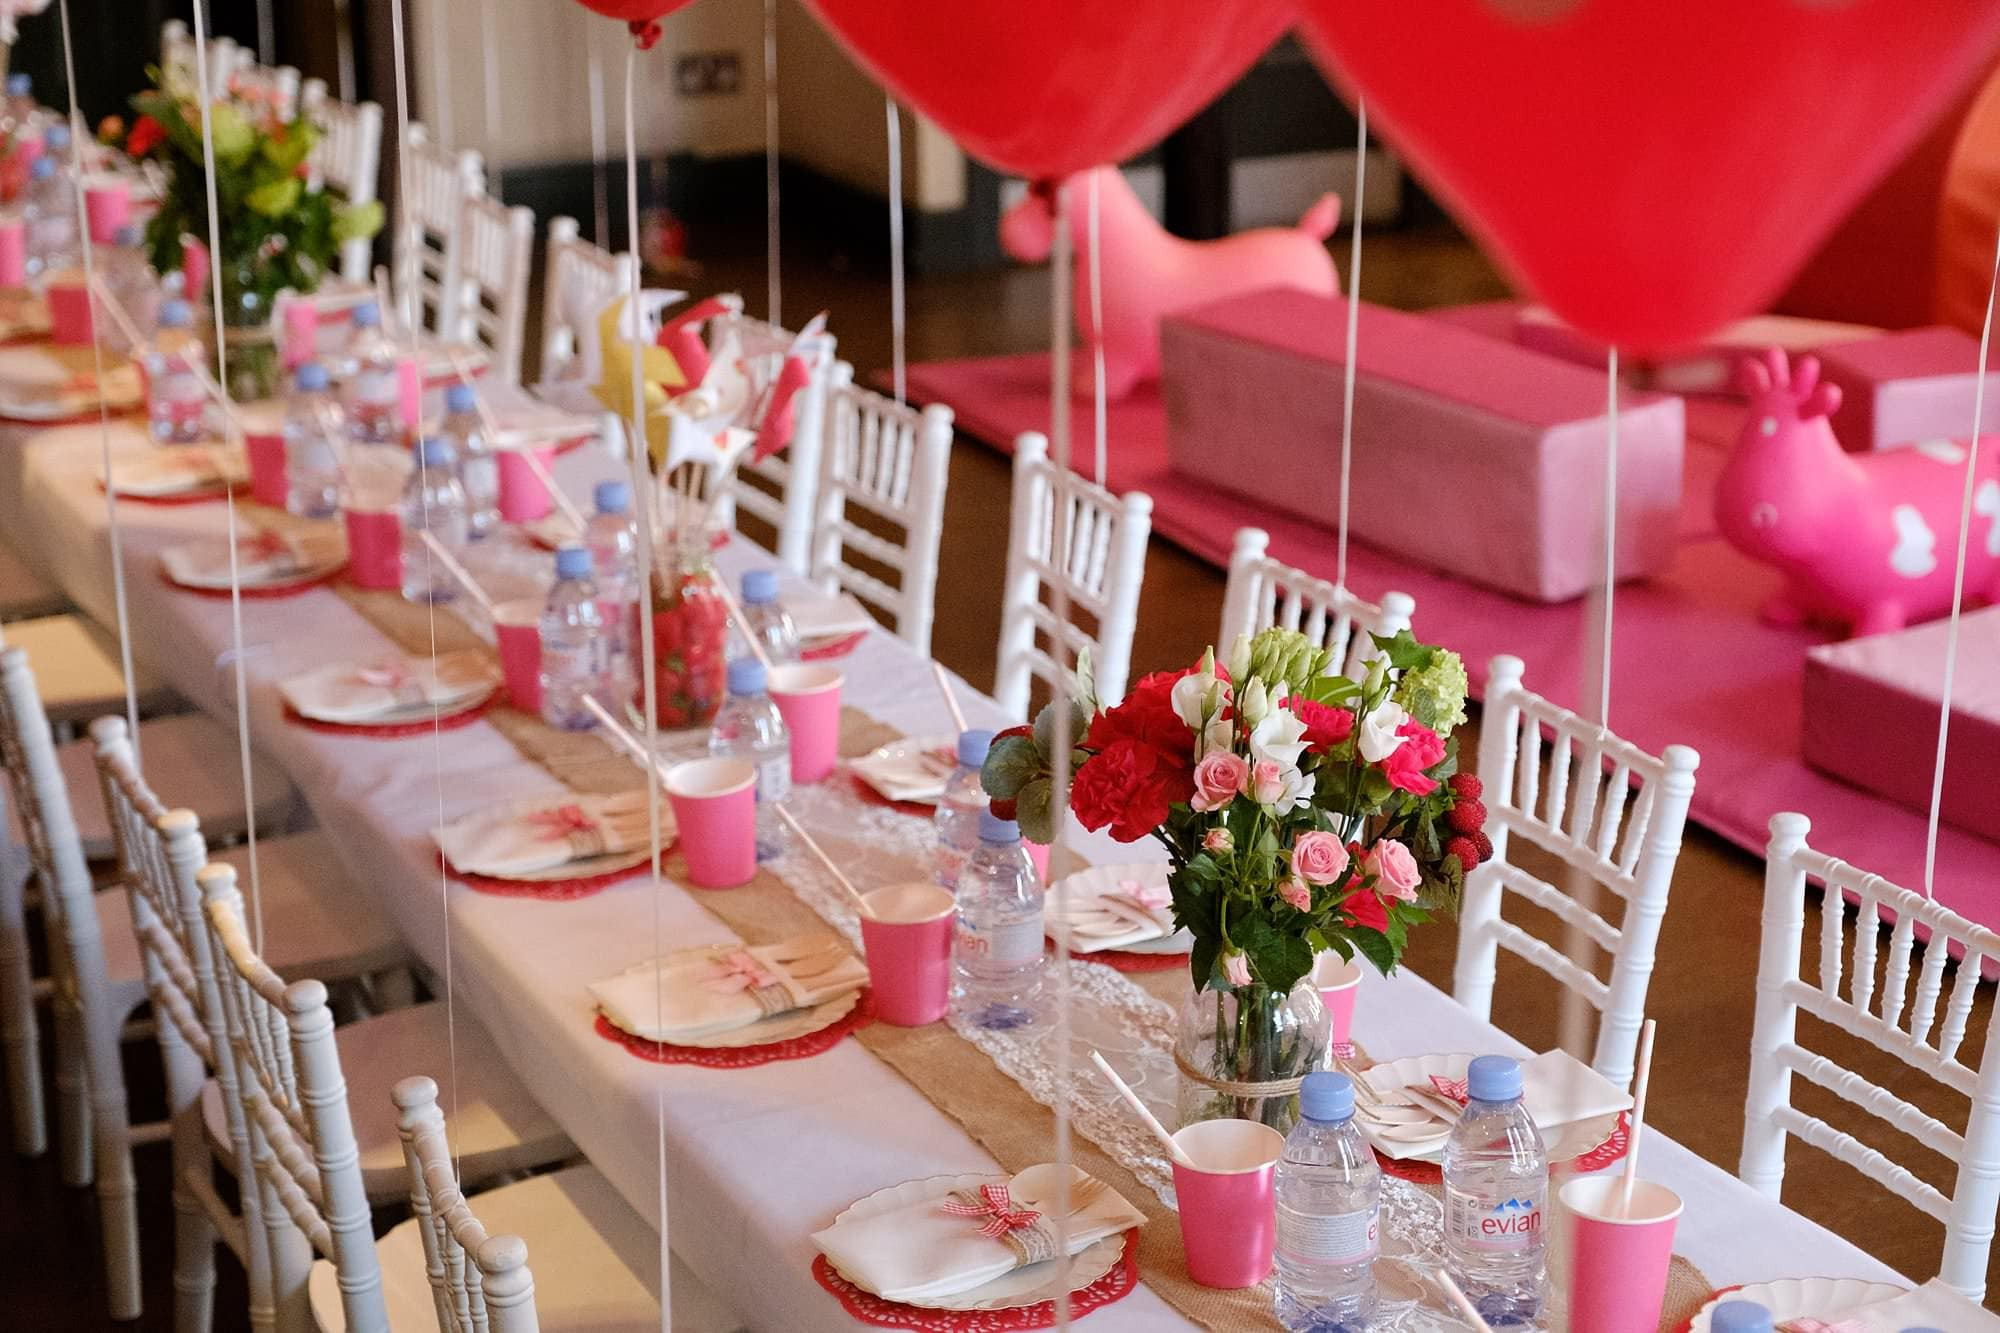 childrens party photographer chelsea beaufort house 001 - A 3rd Birthday Party in Beaufort House Chelsea